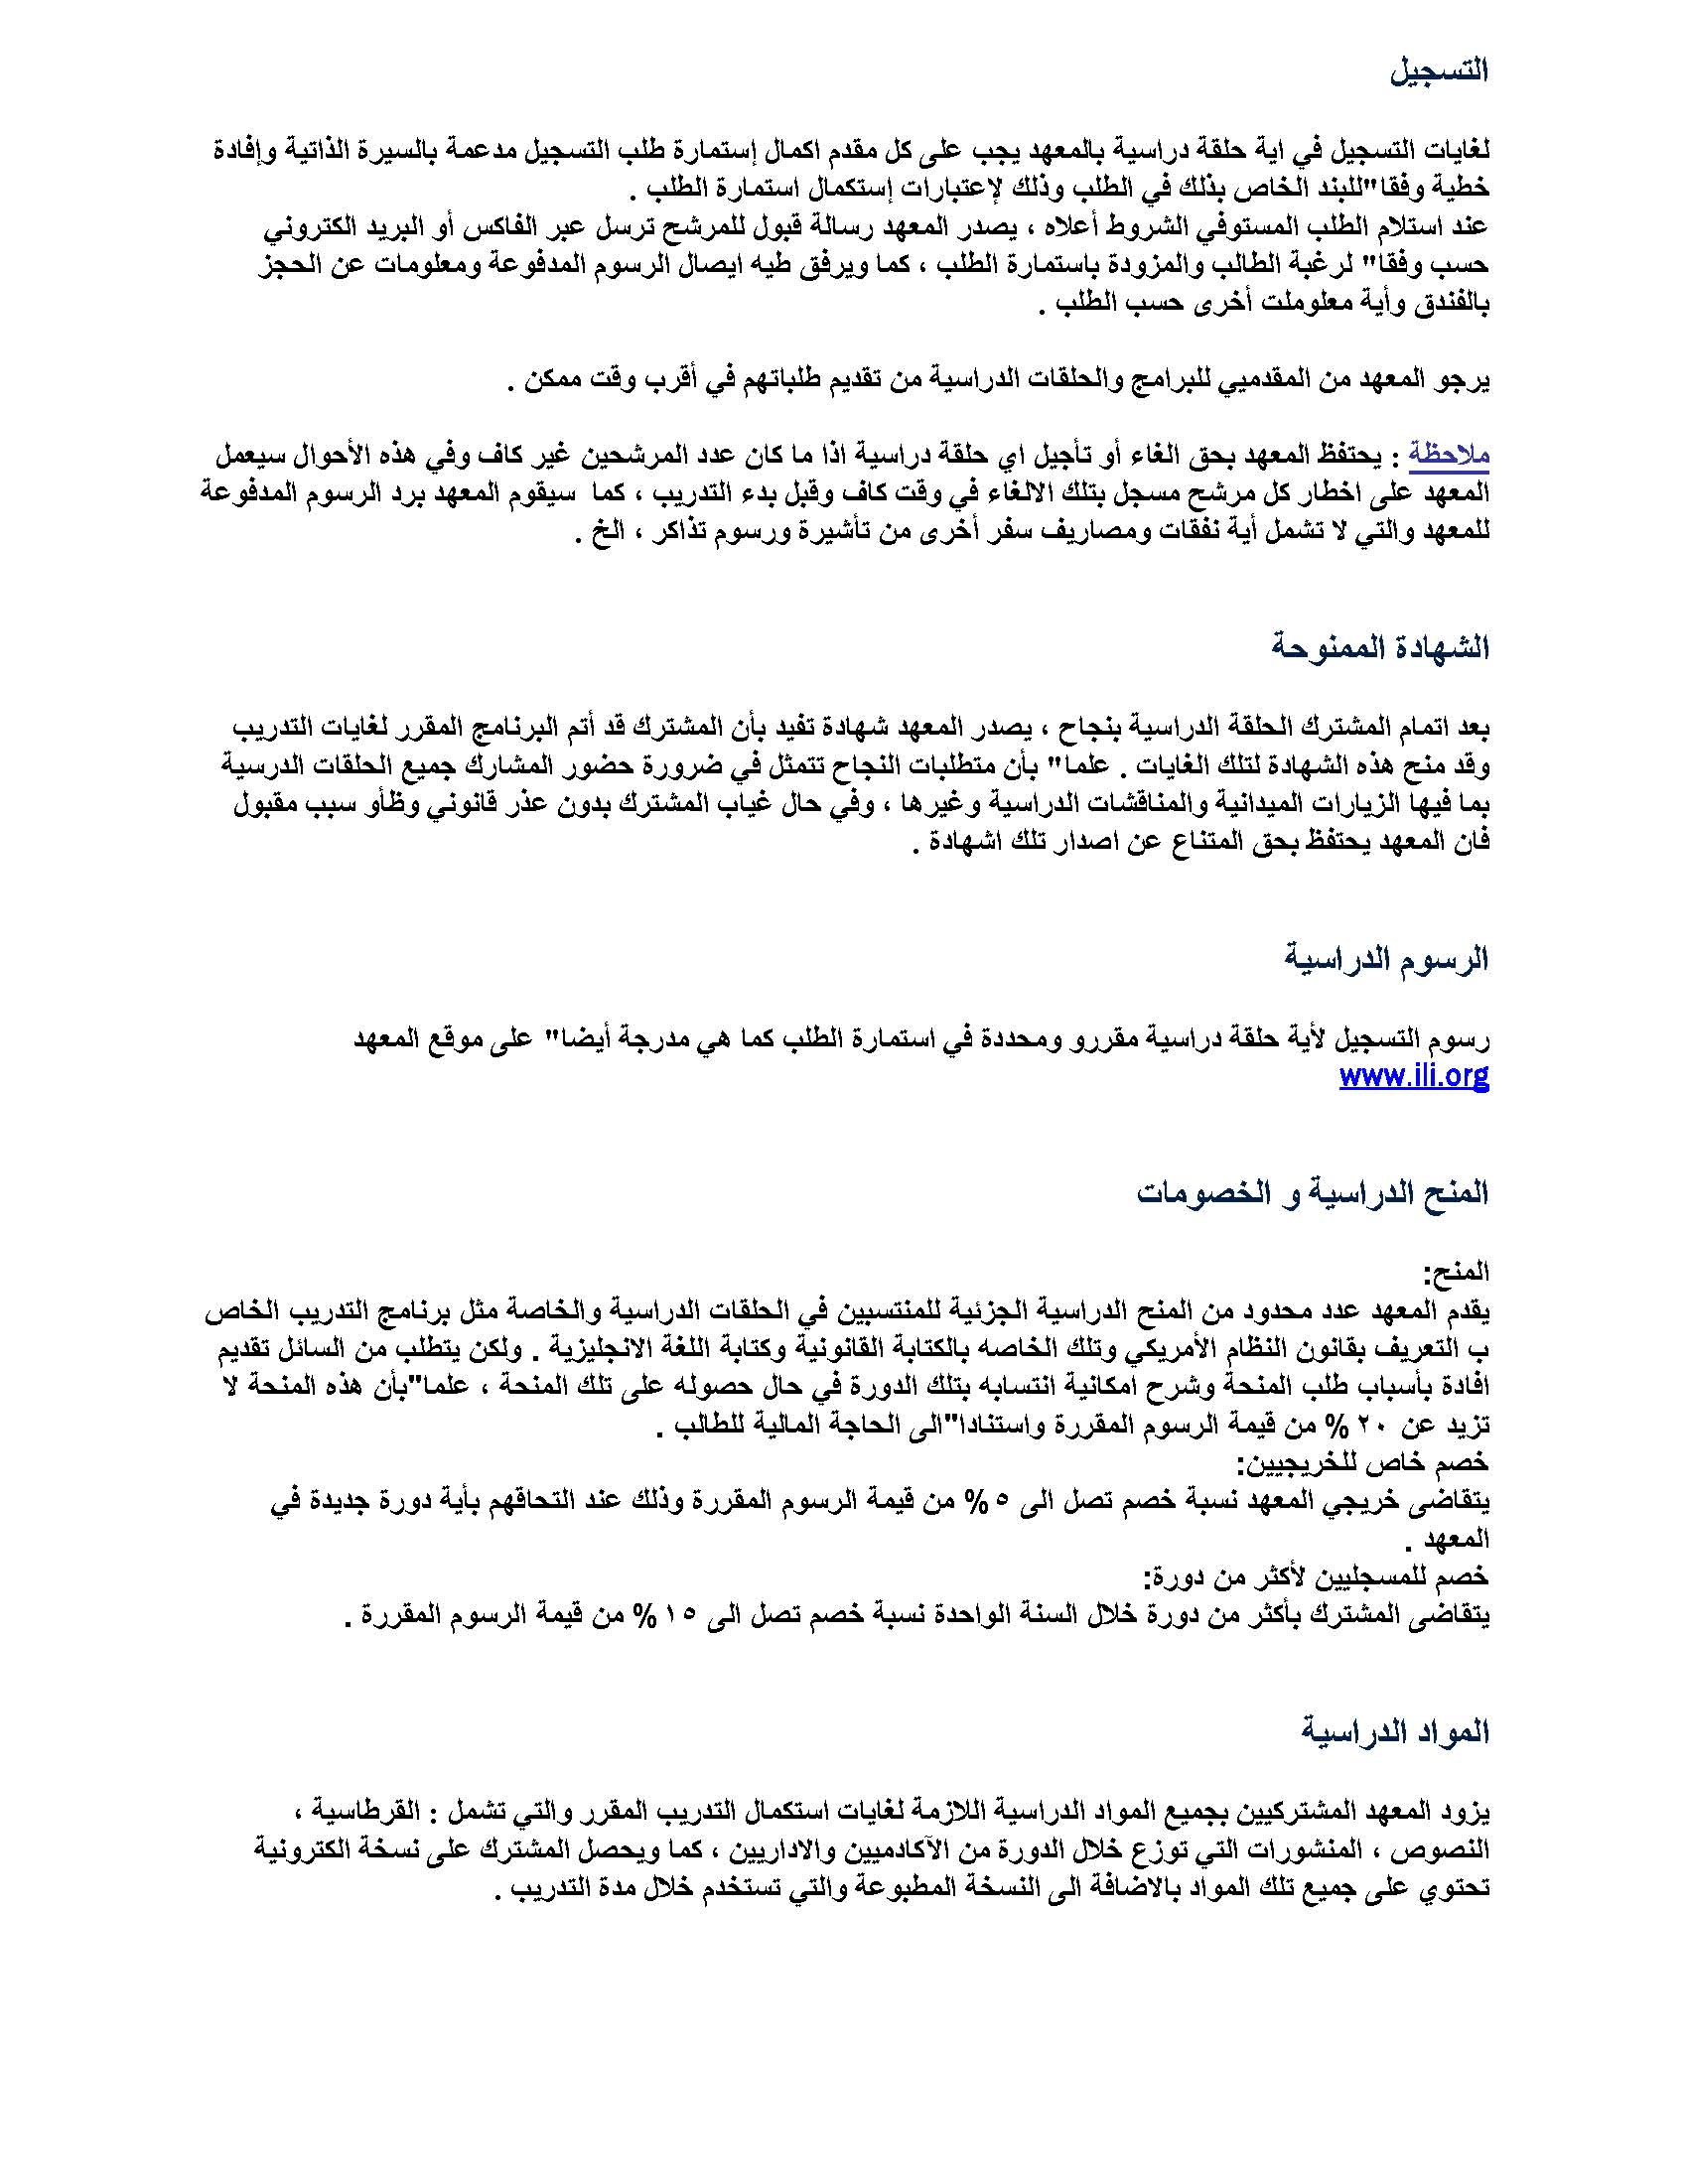 arabic_page_7